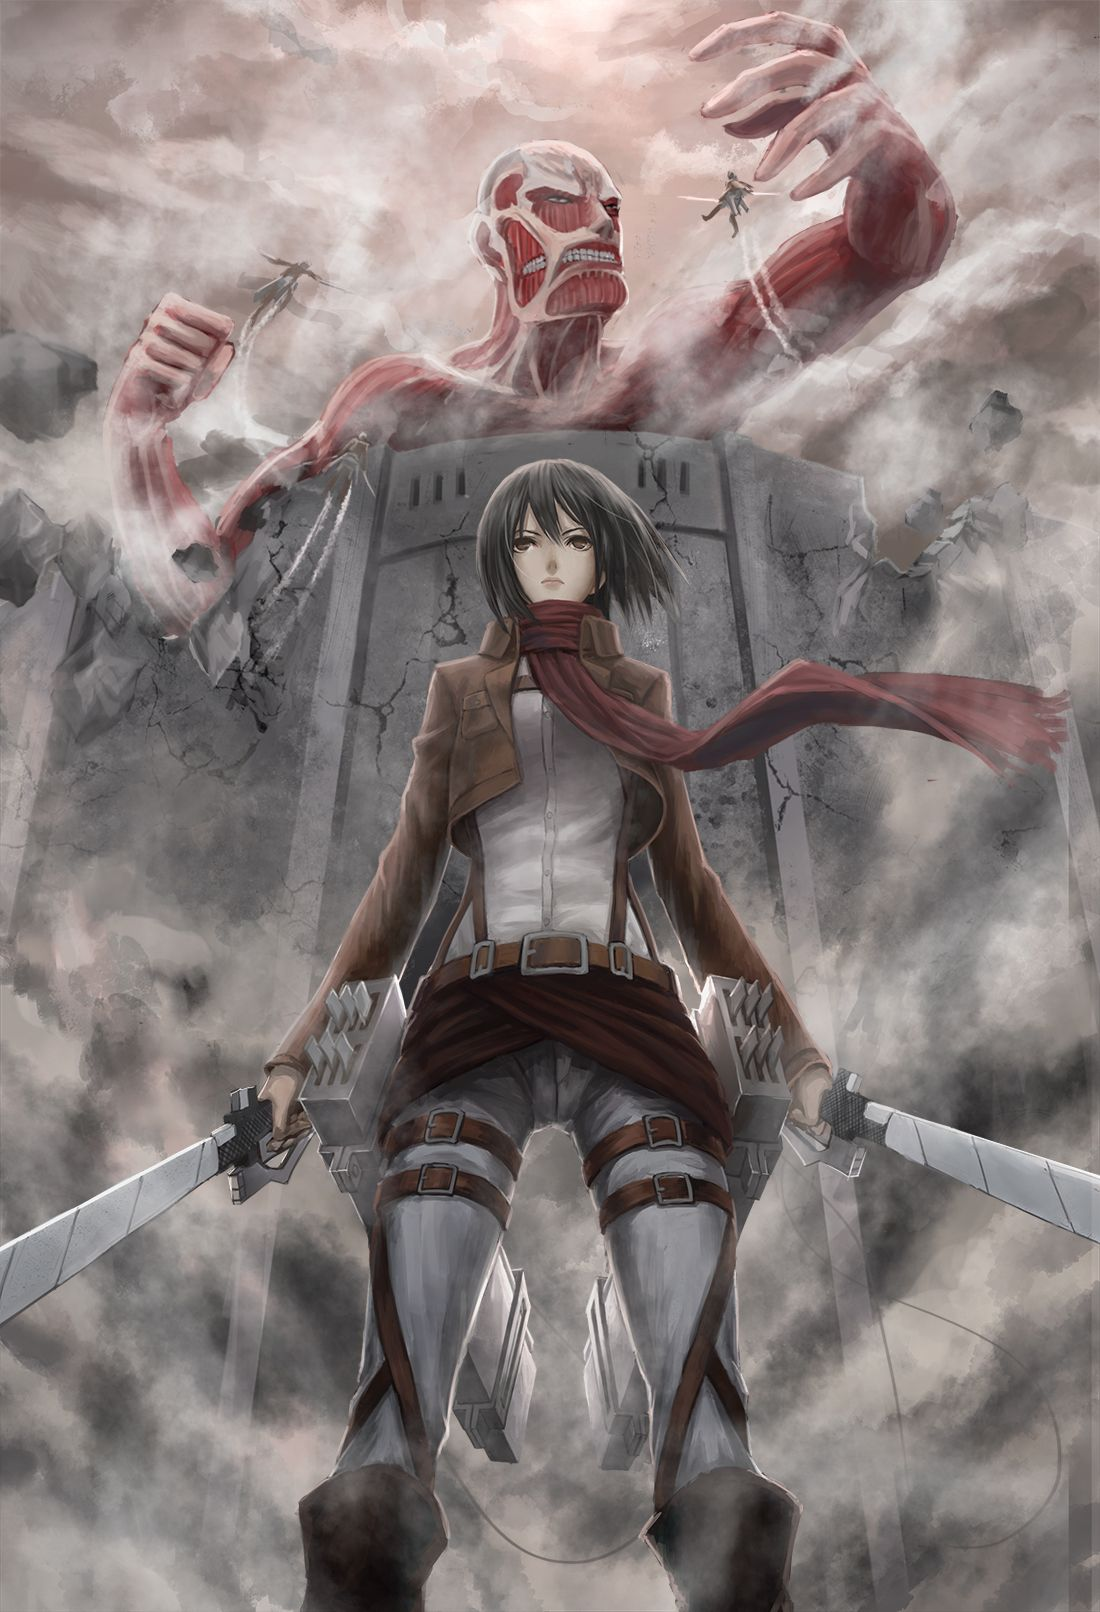 Attack On Titan Background Images Kolpaper Awesome Free Hd Wallpapers